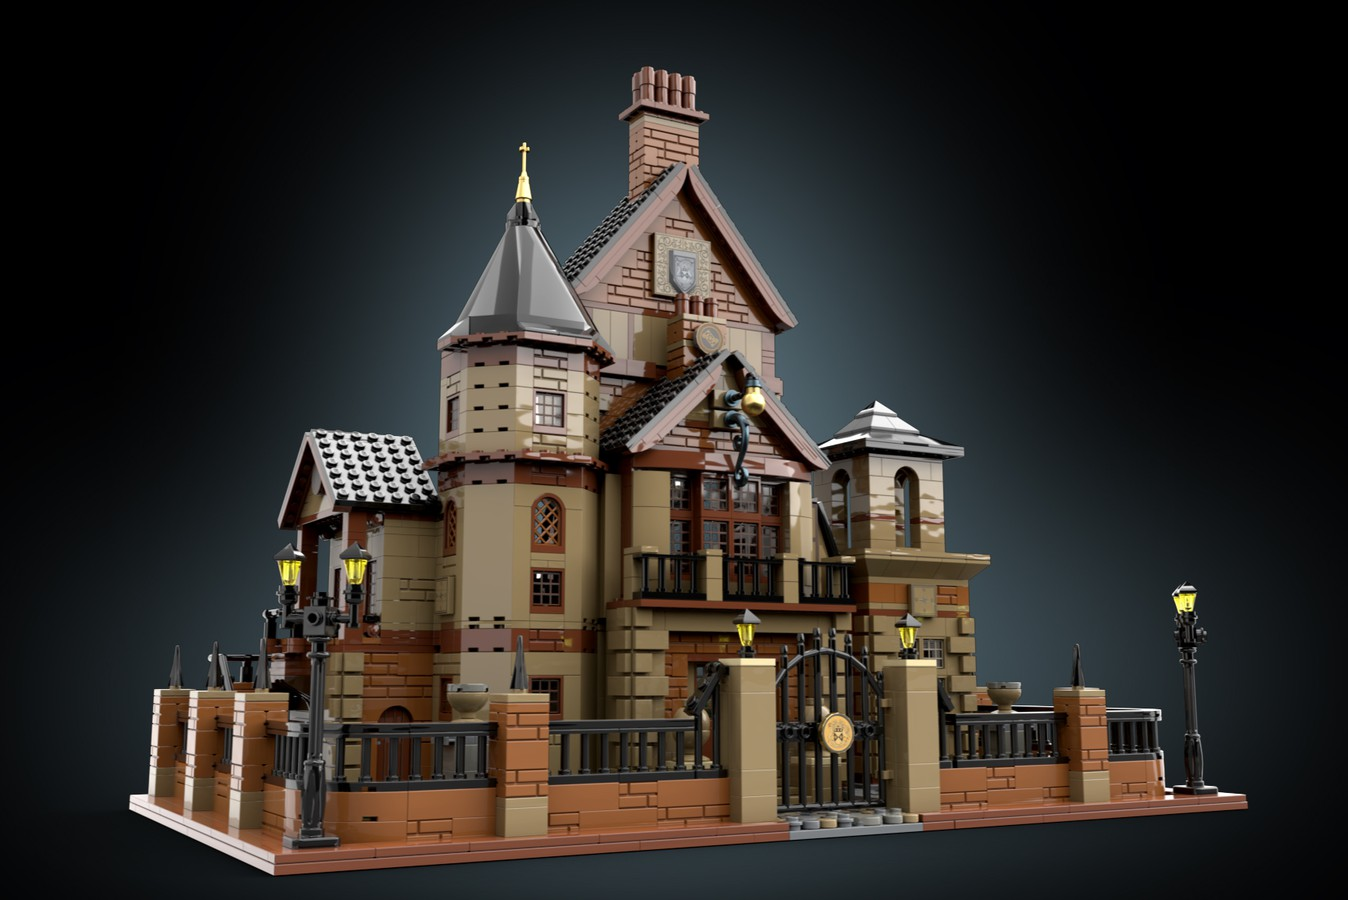 photo of The Dollhouse from 'The Room: Old Sins' is Now an Amazing LEGO Ideas Project image